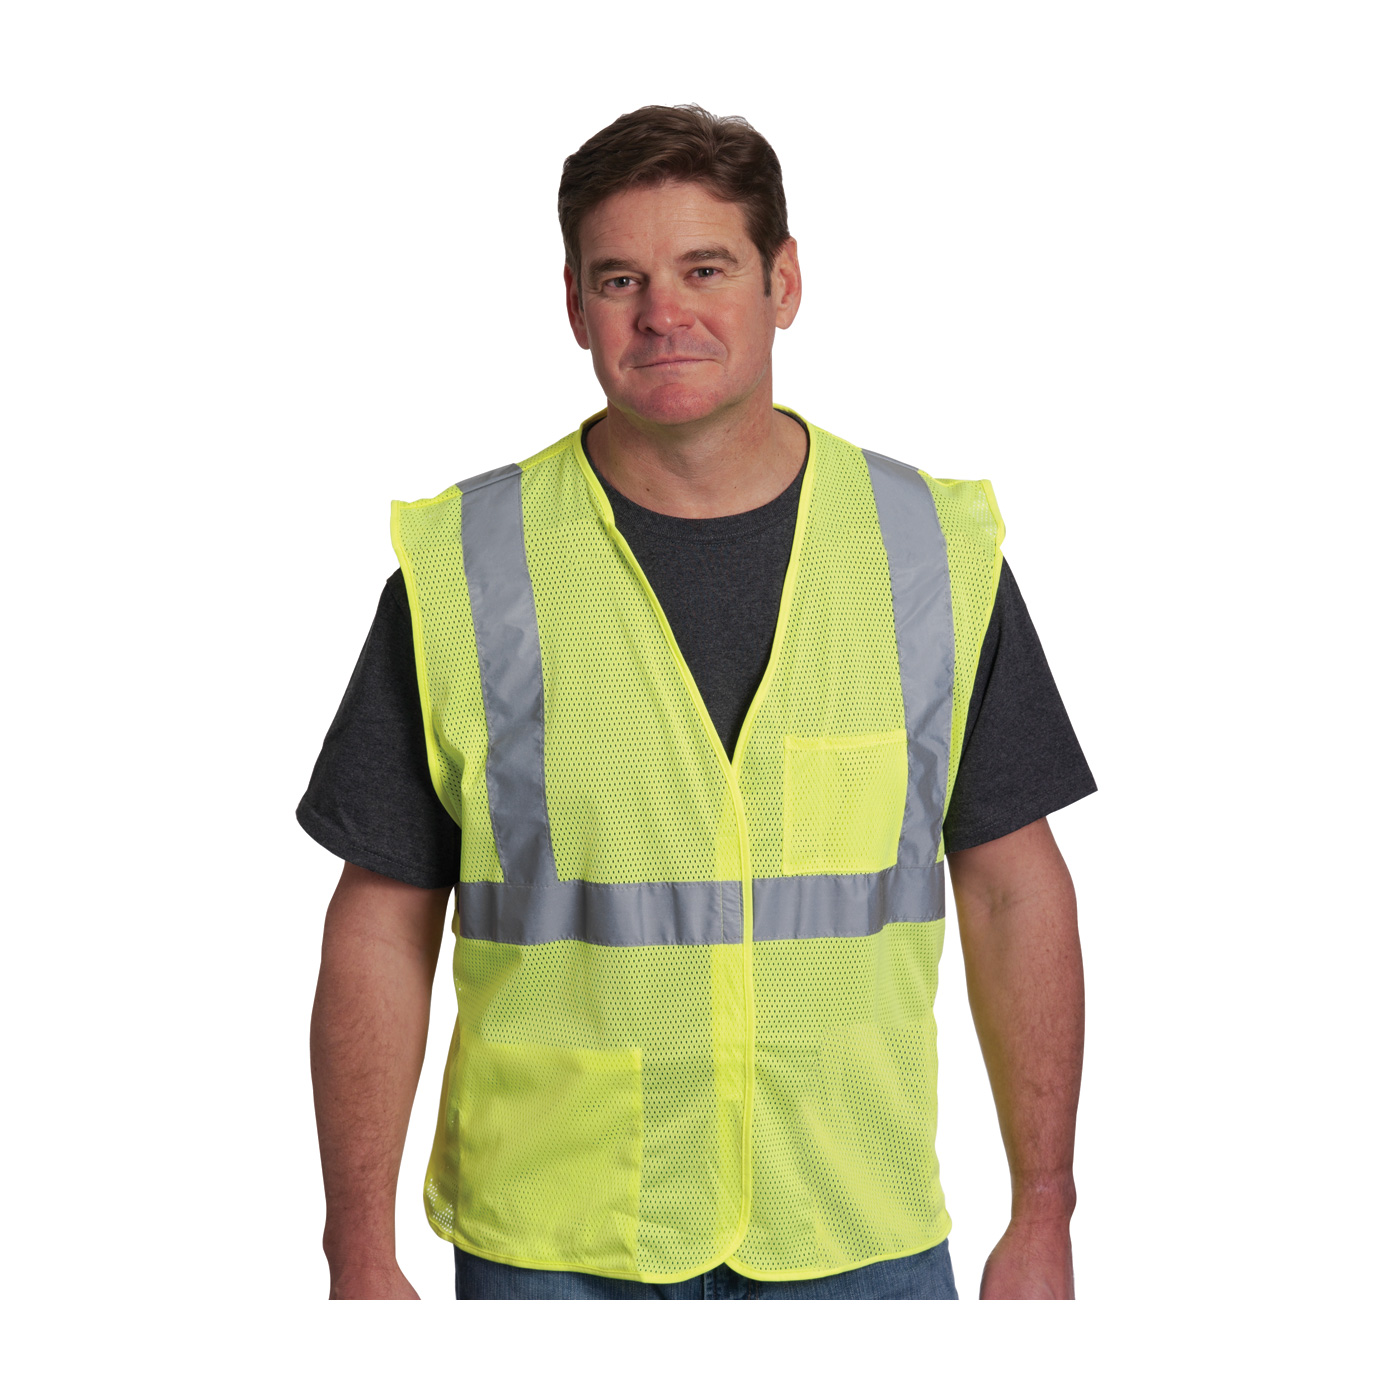 Ansi Type R Class 2 Two Pocket Value Reflective Mesh Vest